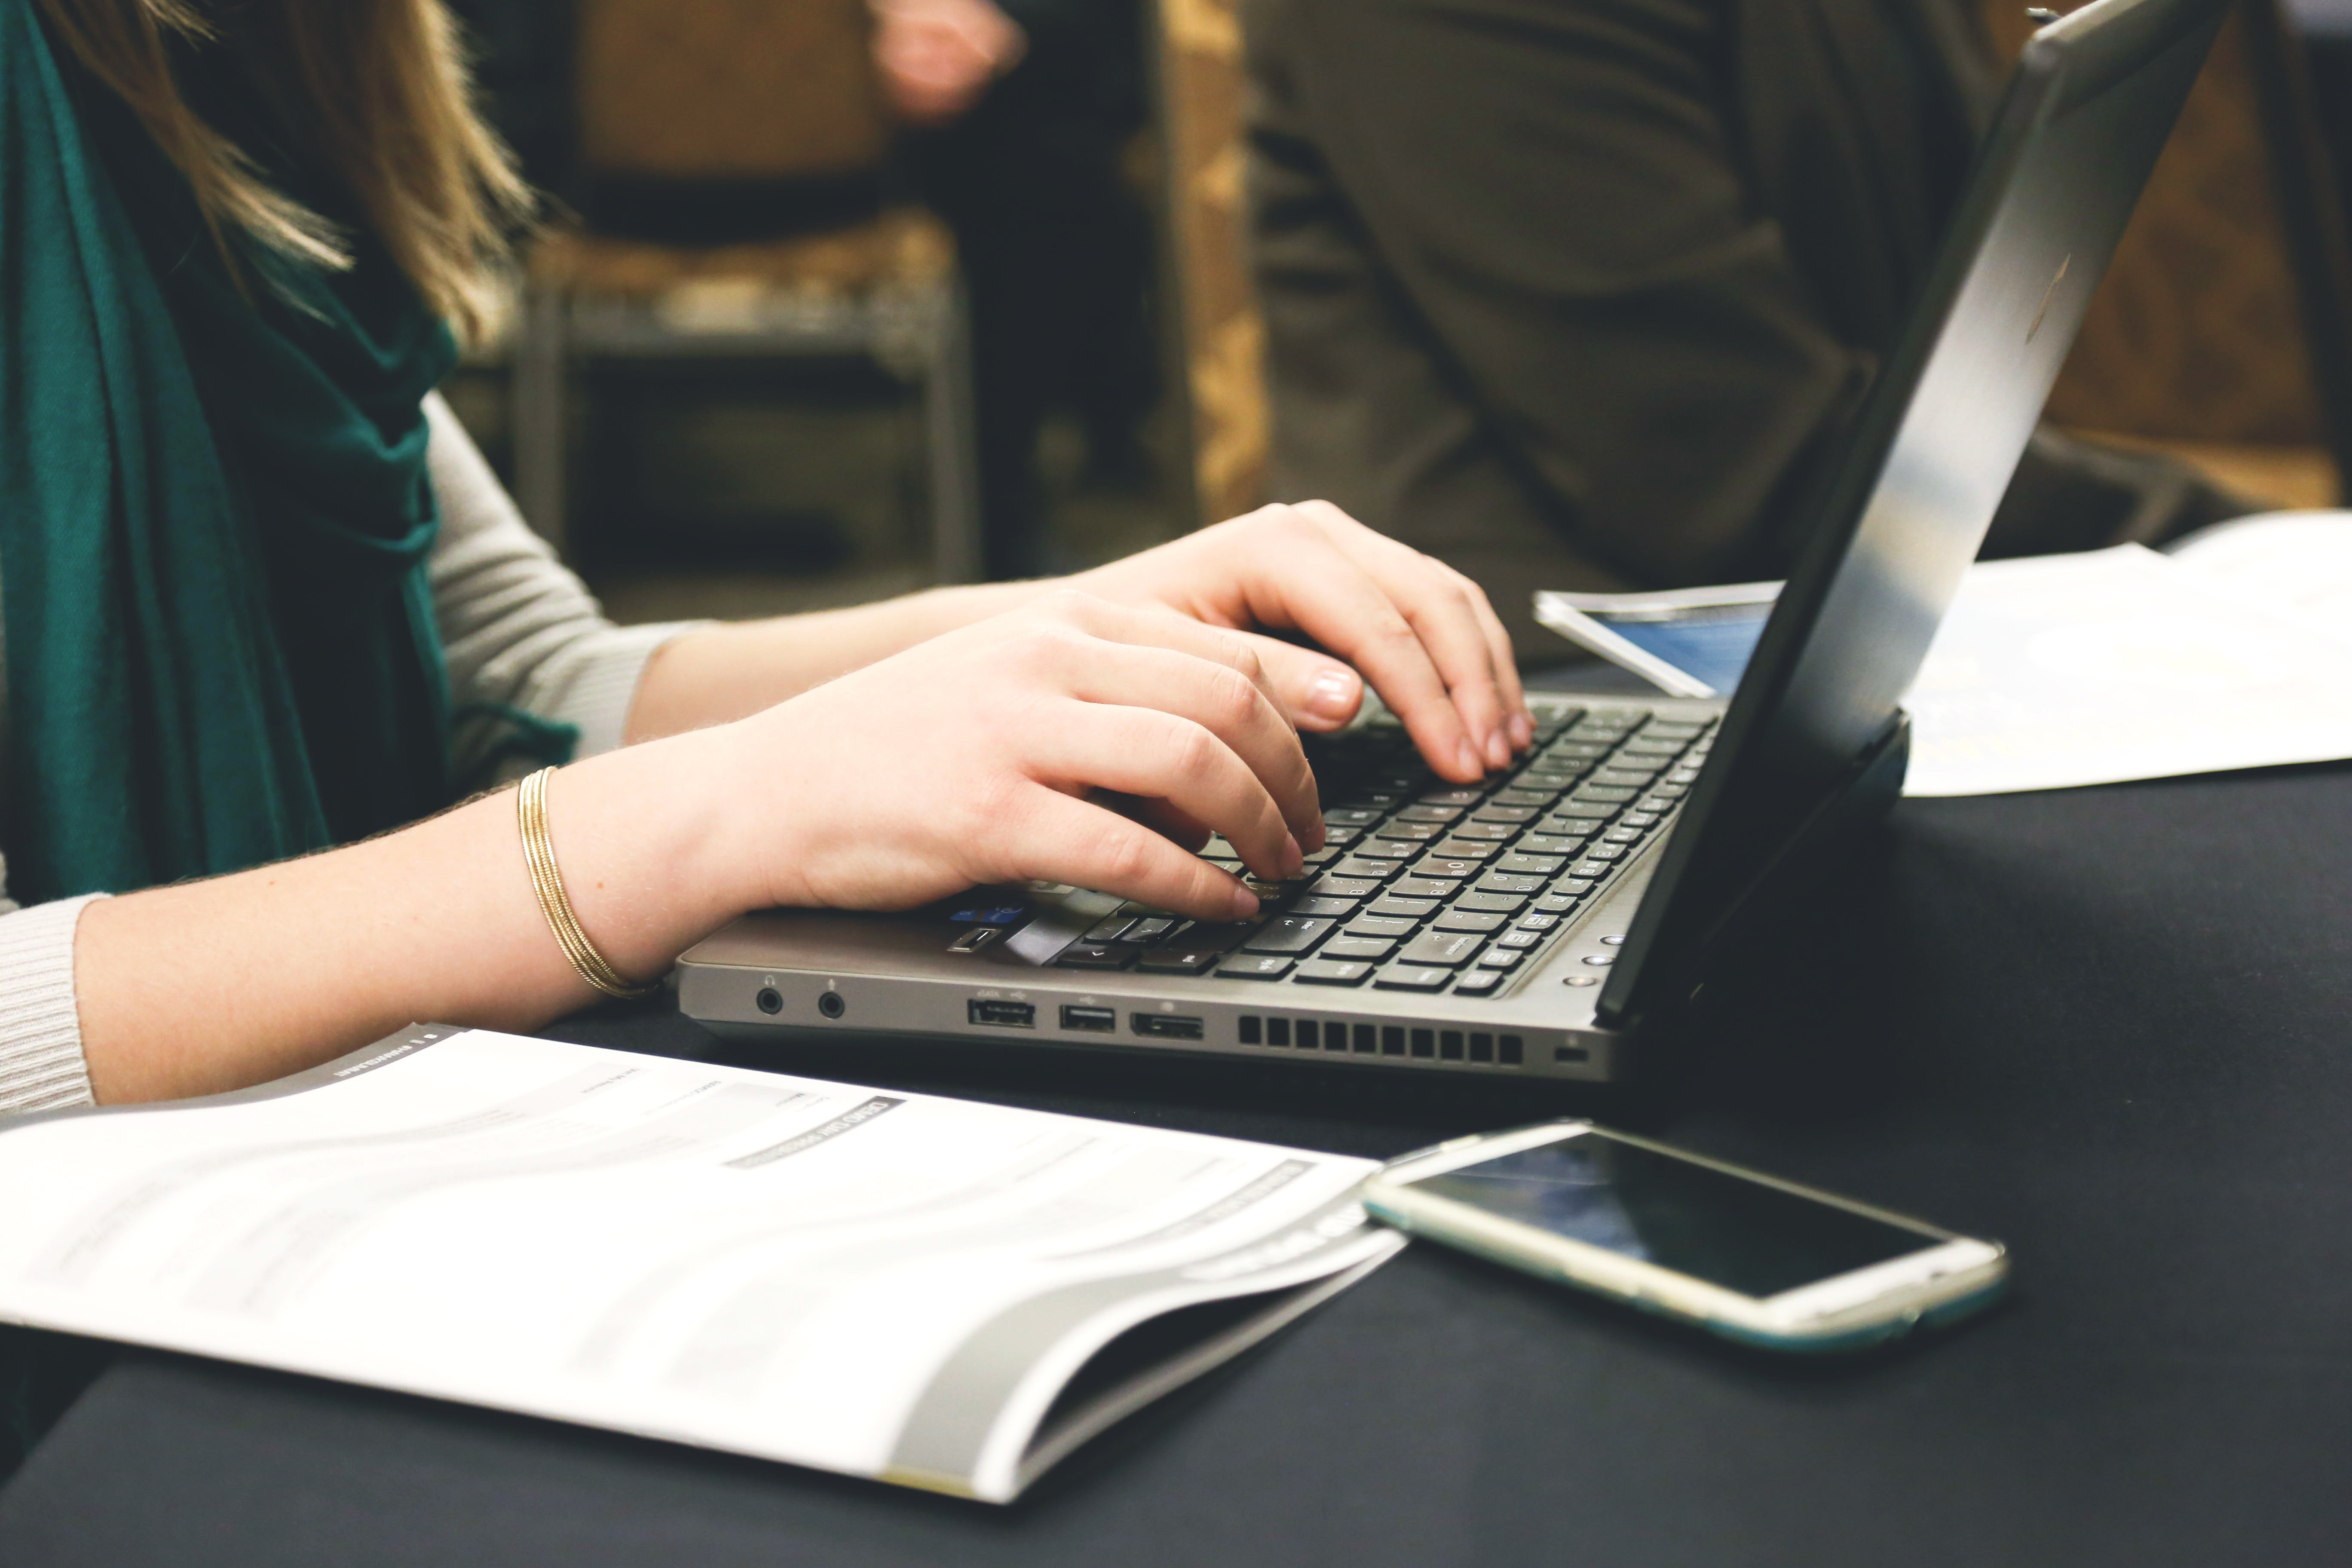 Photo of a woman typing on a laptop computer.